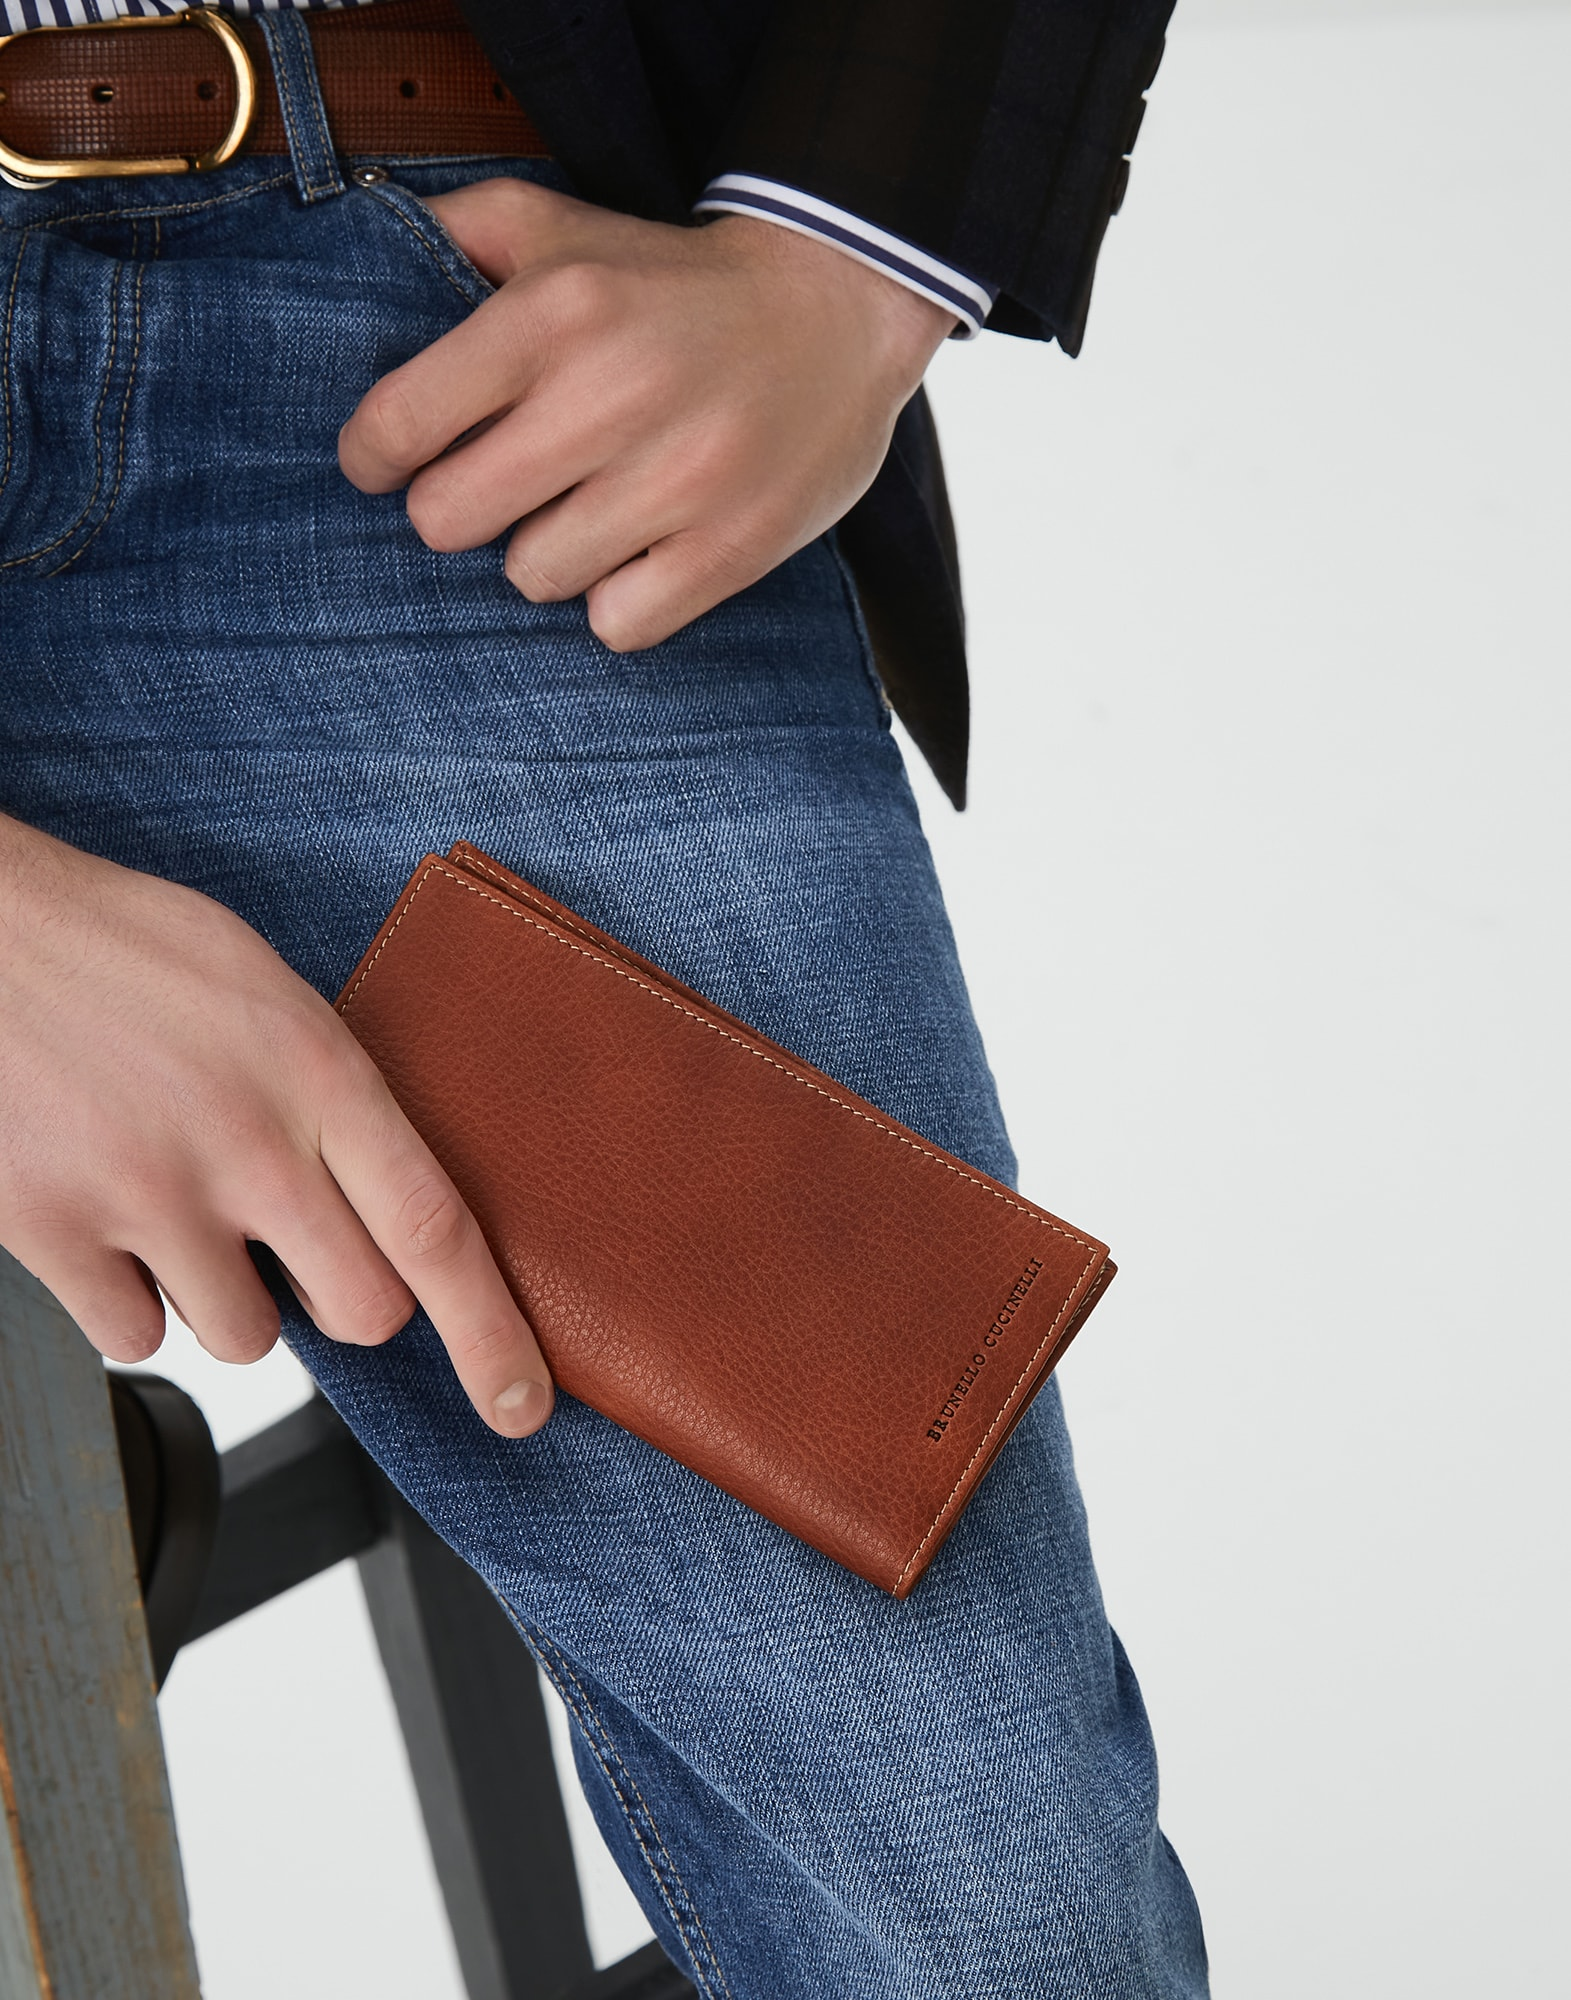 Card Holder - Editorial view